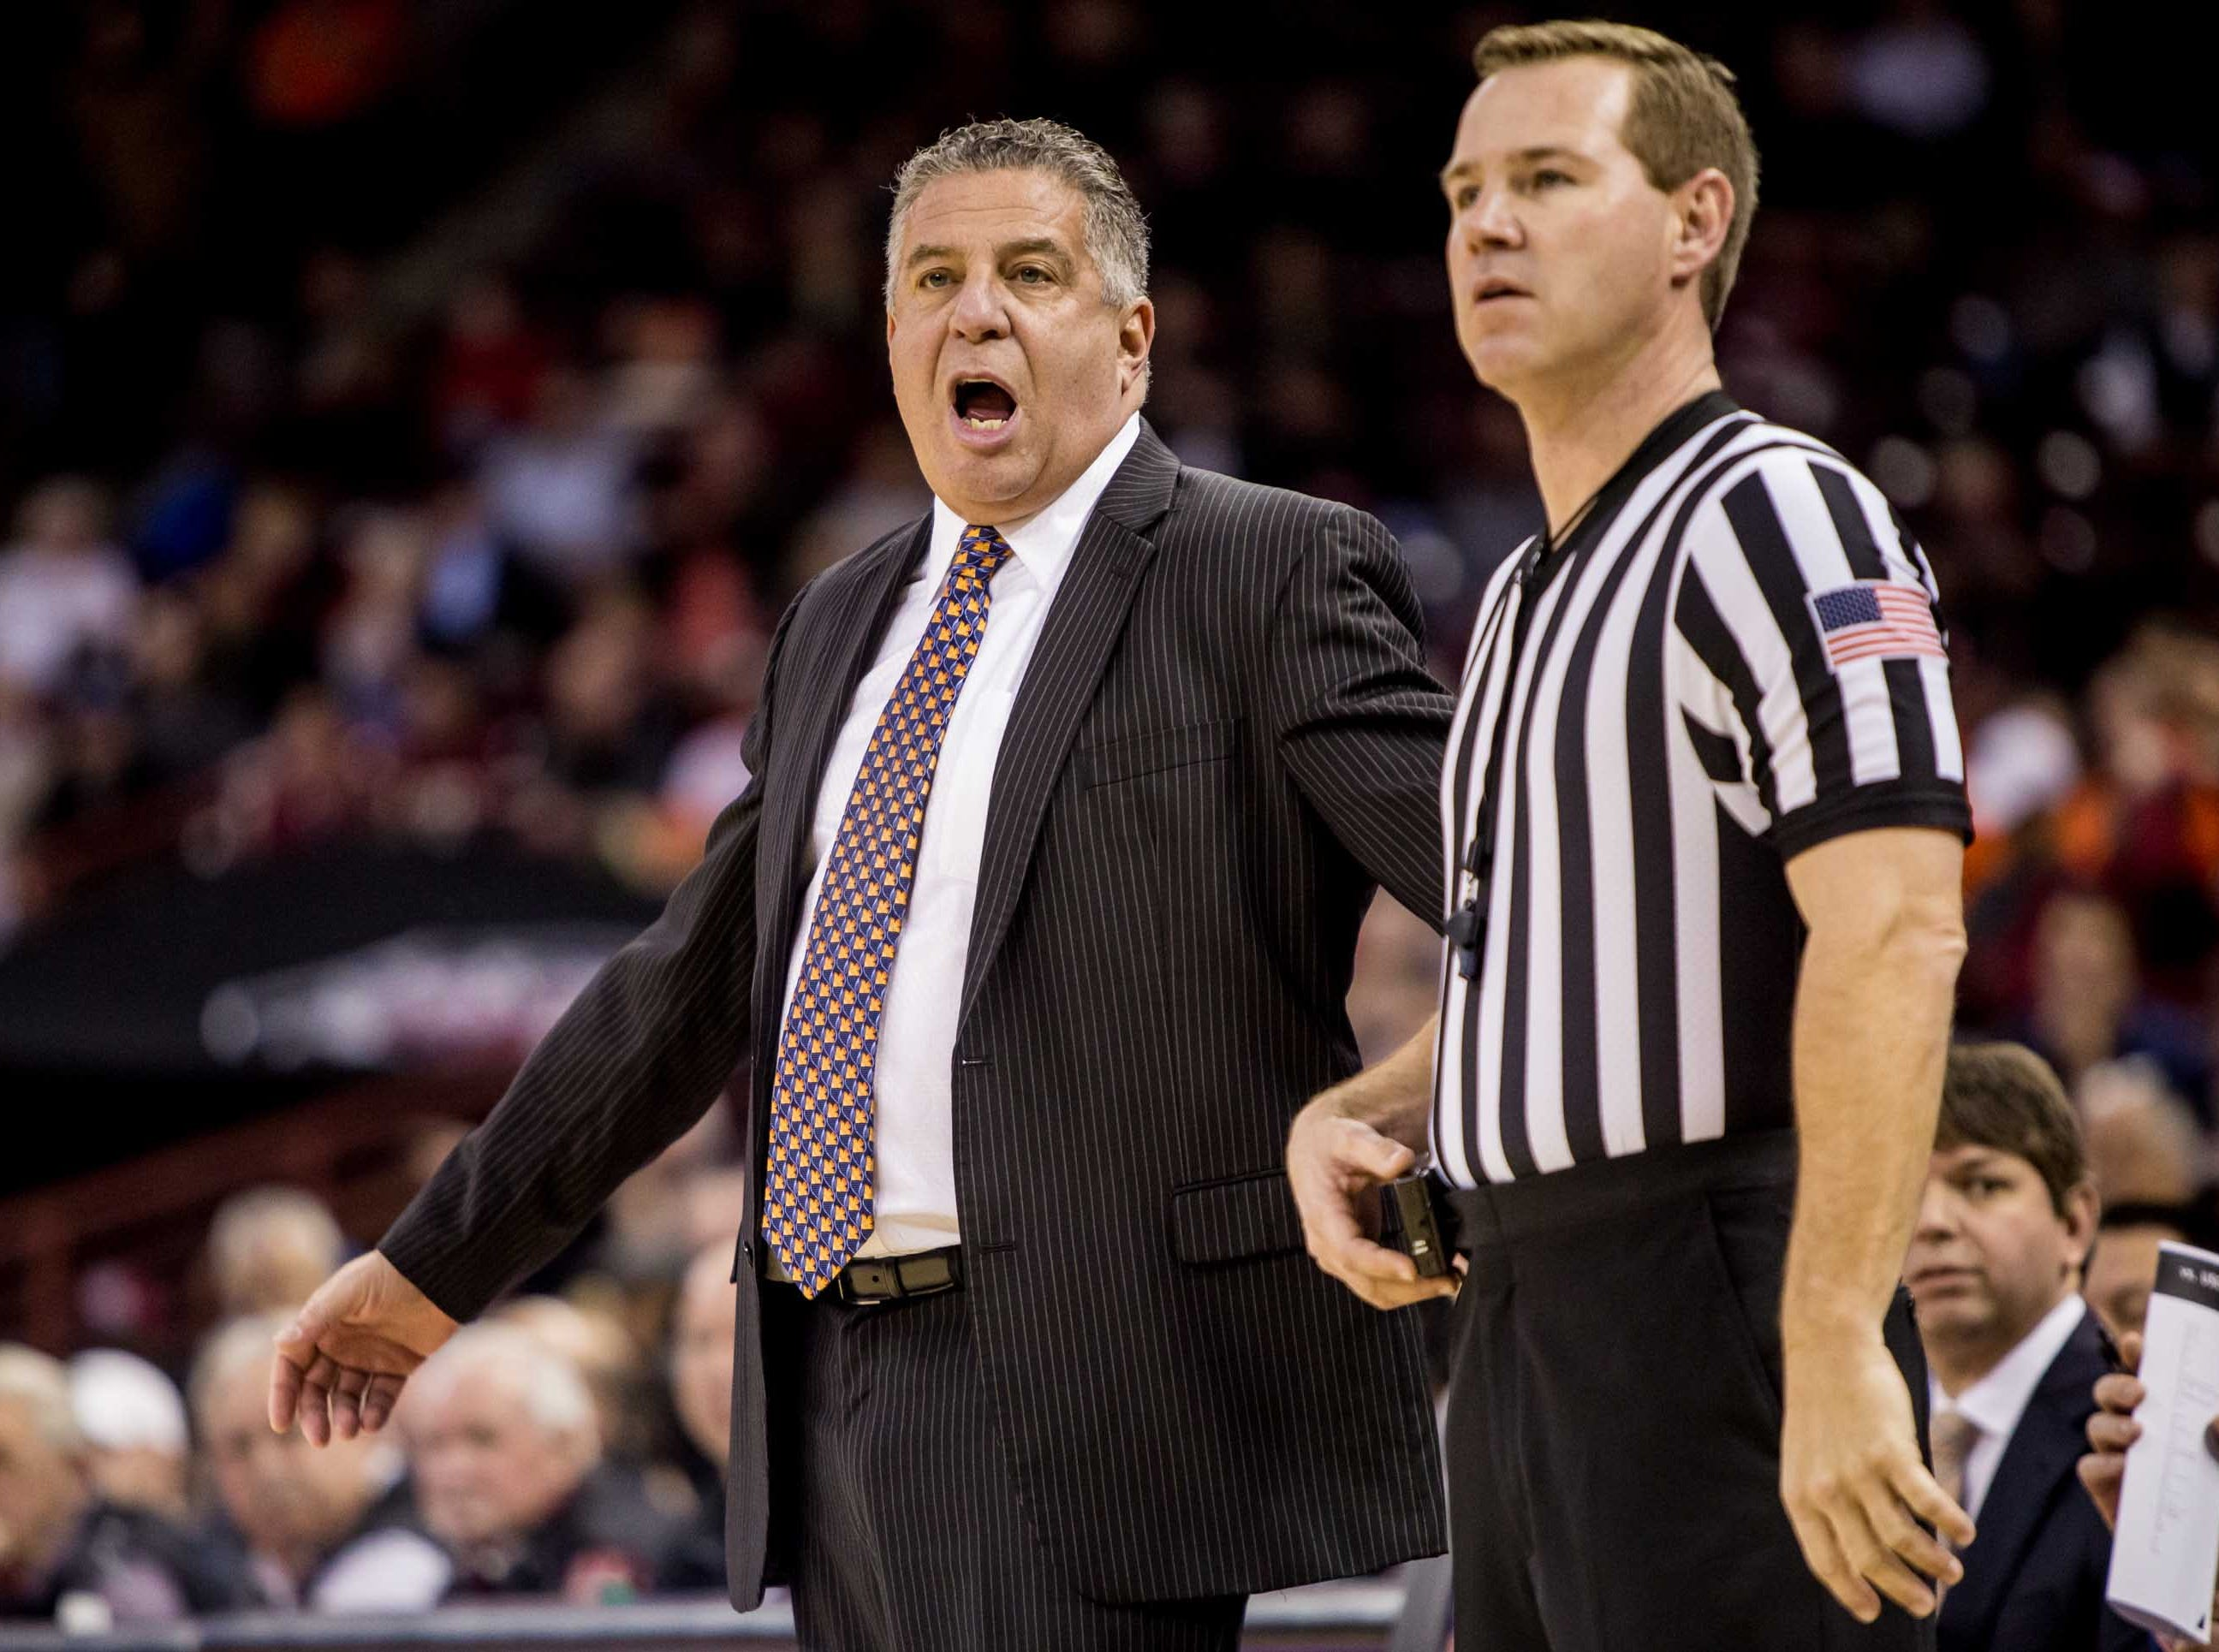 Jan 22, 2019; Columbia, SC, USA; Auburn Tigers head coach Bruce Pearl disputes a call against the South Carolina Gamecocks in the first half at Colonial Life Arena. Mandatory Credit: Jeff Blake-USA TODAY Sports